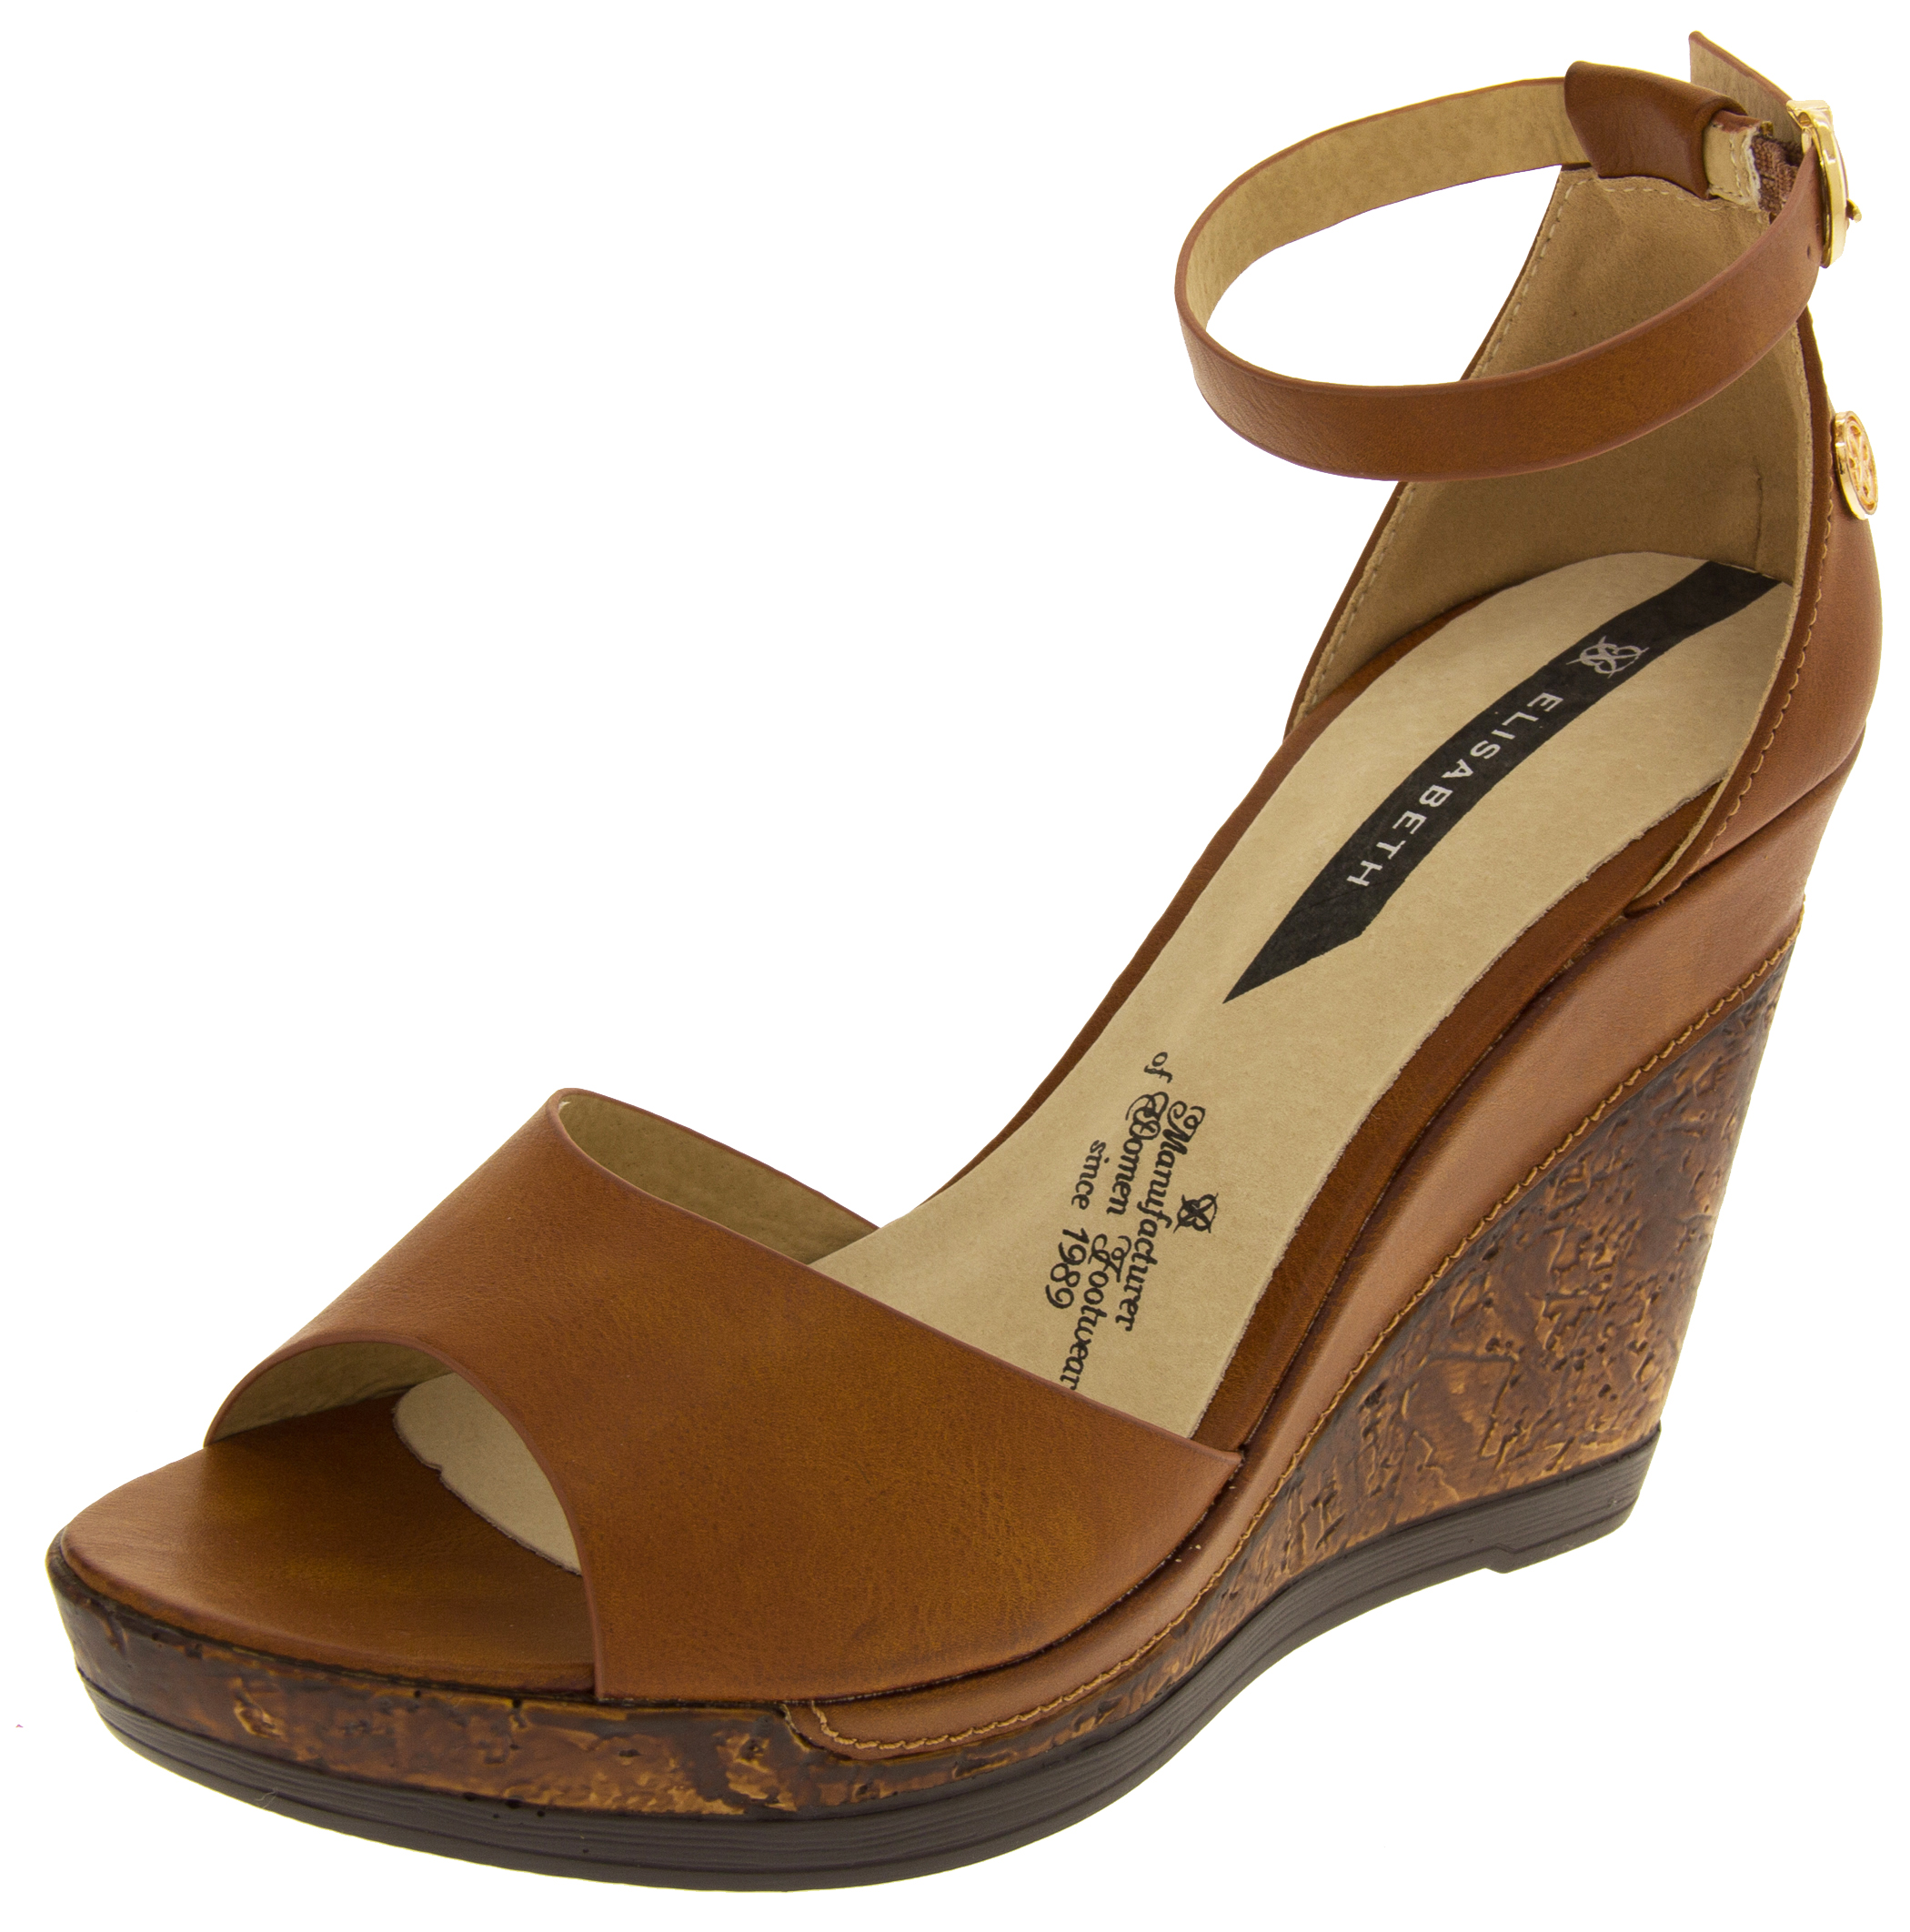 Womens Brown Leather Wedge Shoes